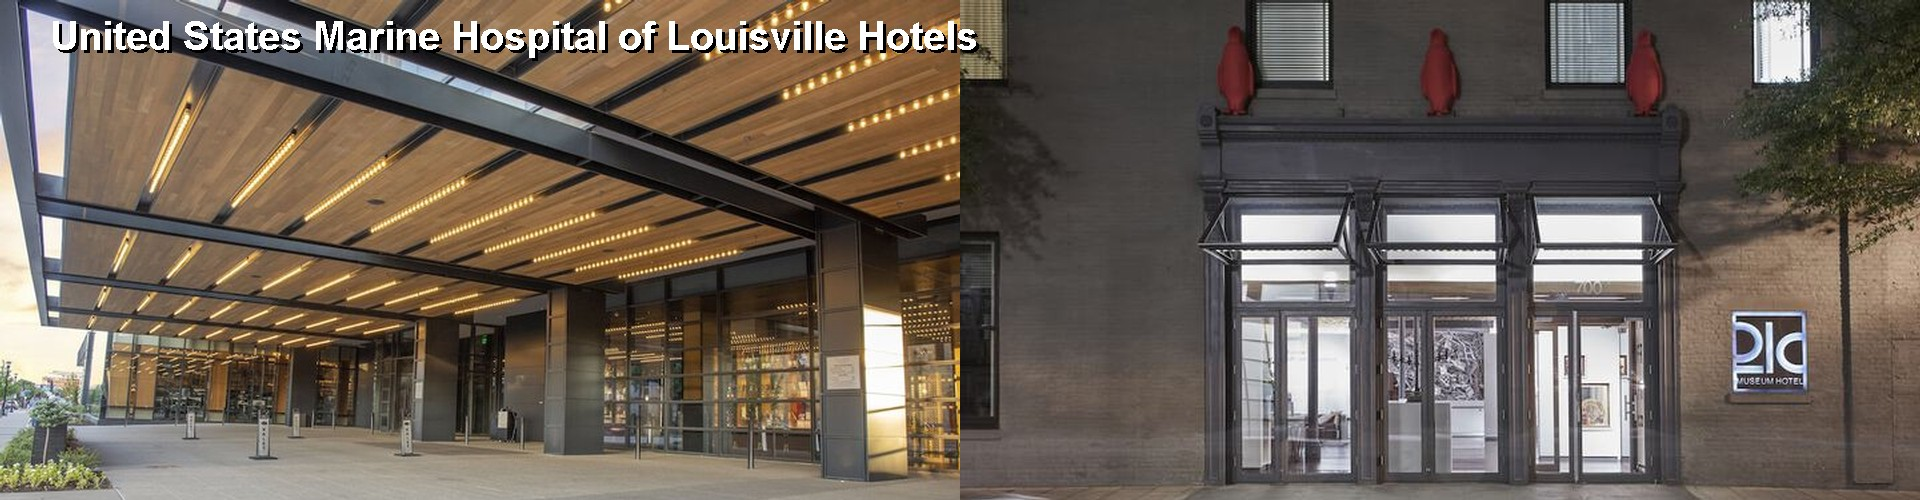 5 Best Hotels near United States Marine Hospital of Louisville